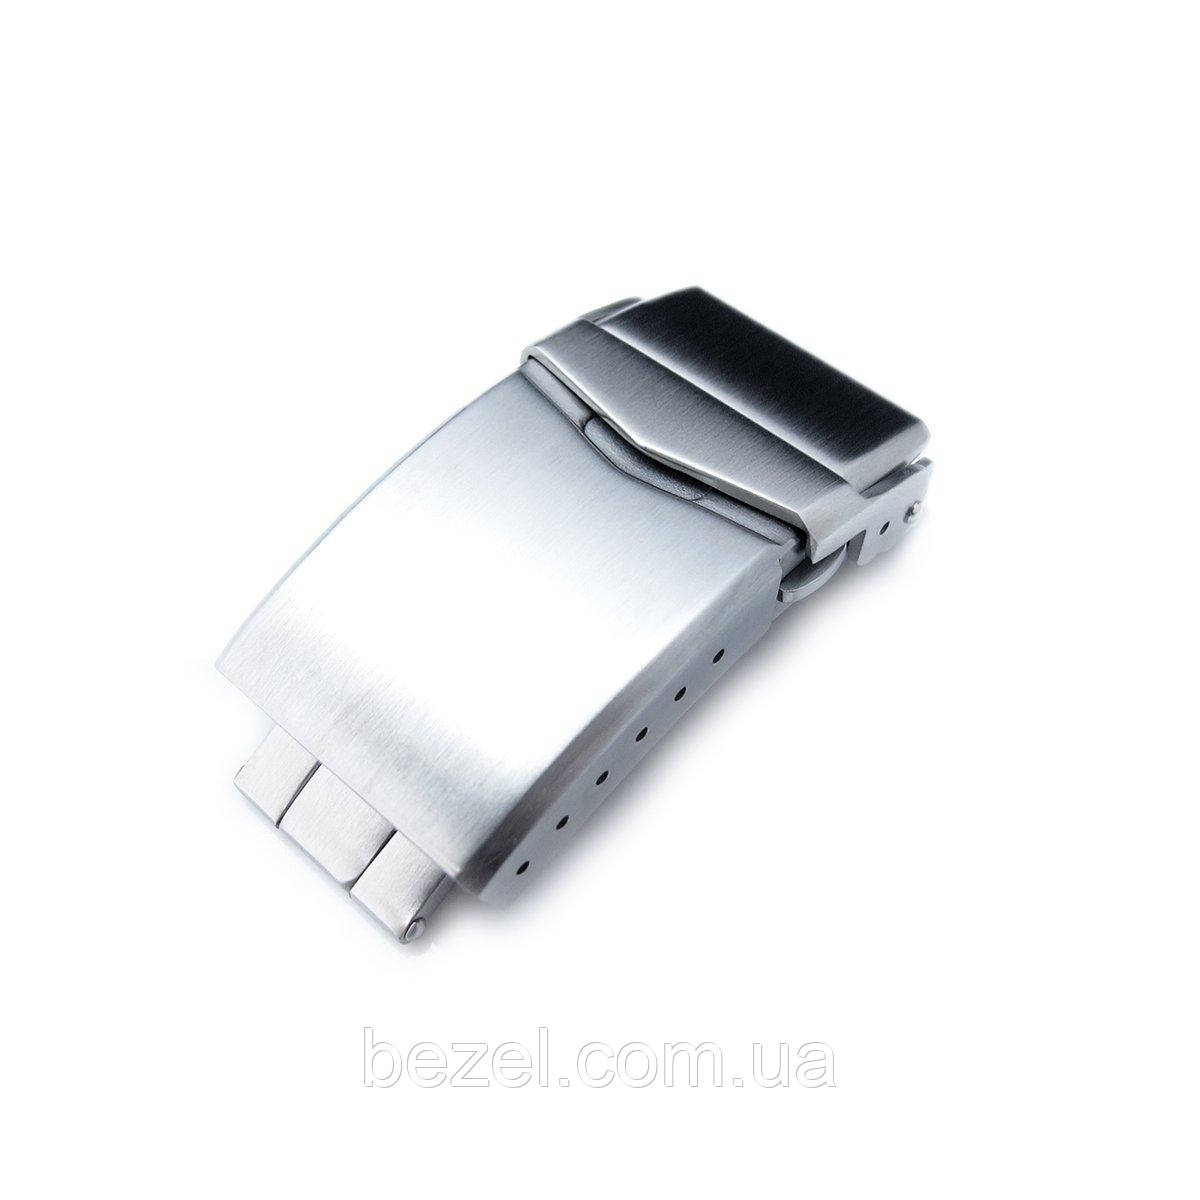 18mm, 20mm or 22mm Stainless Steel V Clasp Double Lock Button Diver Buckle, Brushed